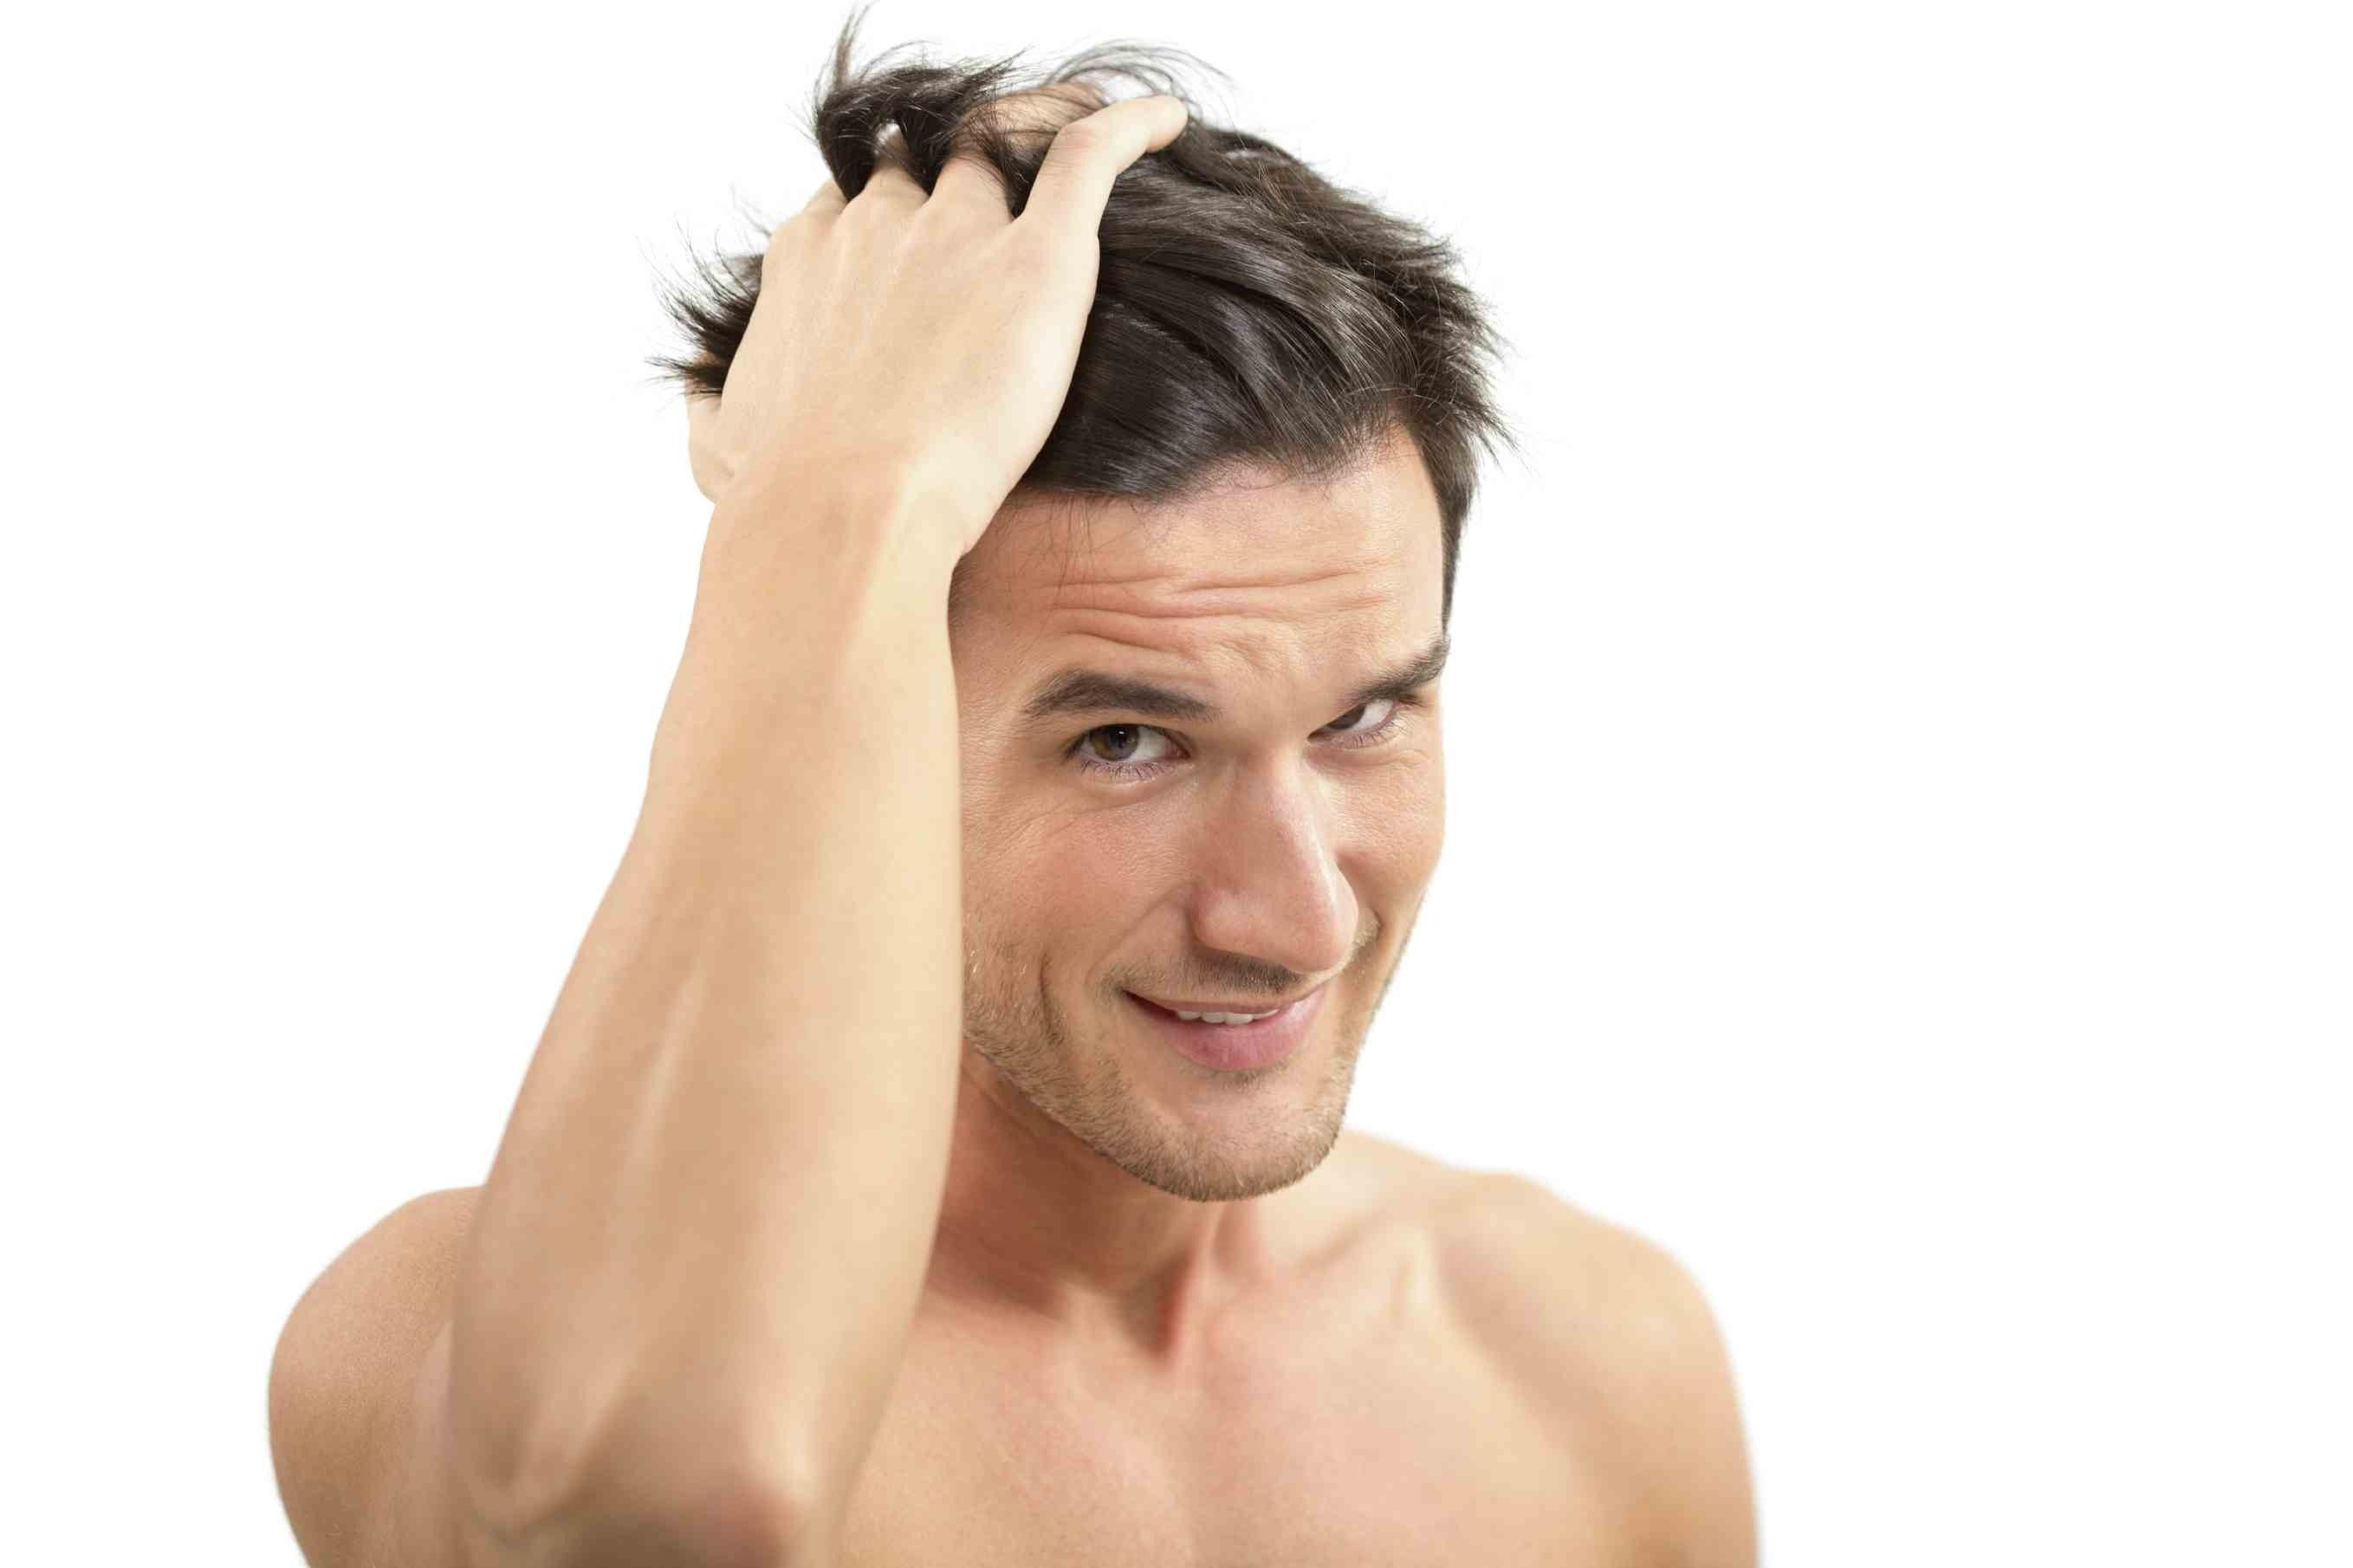 Man styling his hair